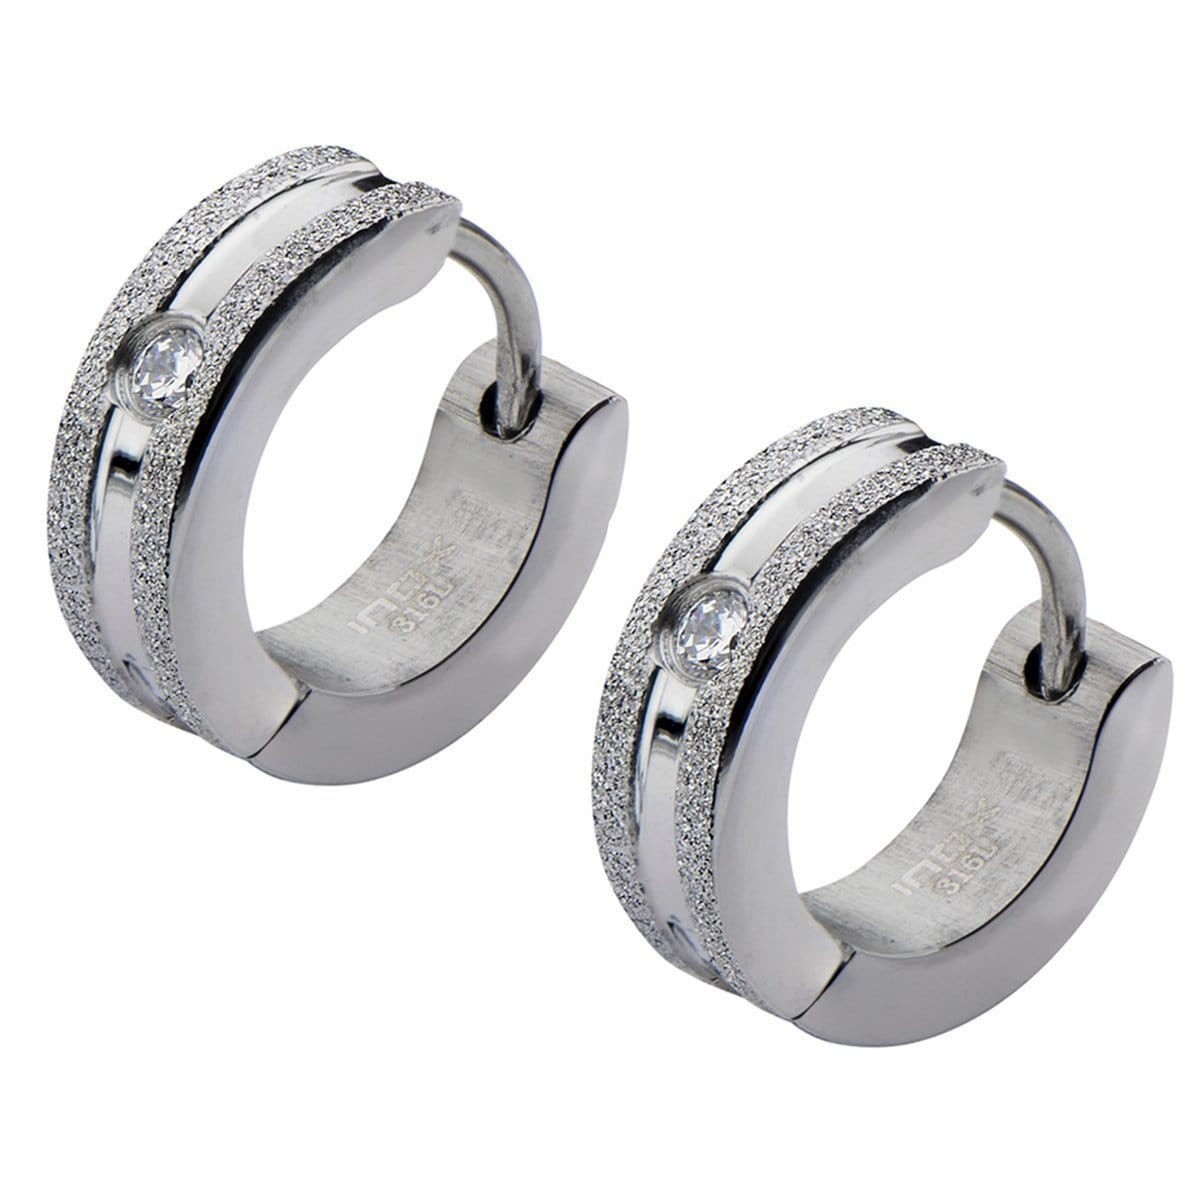 Silver Stainless Steel 4mm Sand Finished White Crystal Huggies Earrings